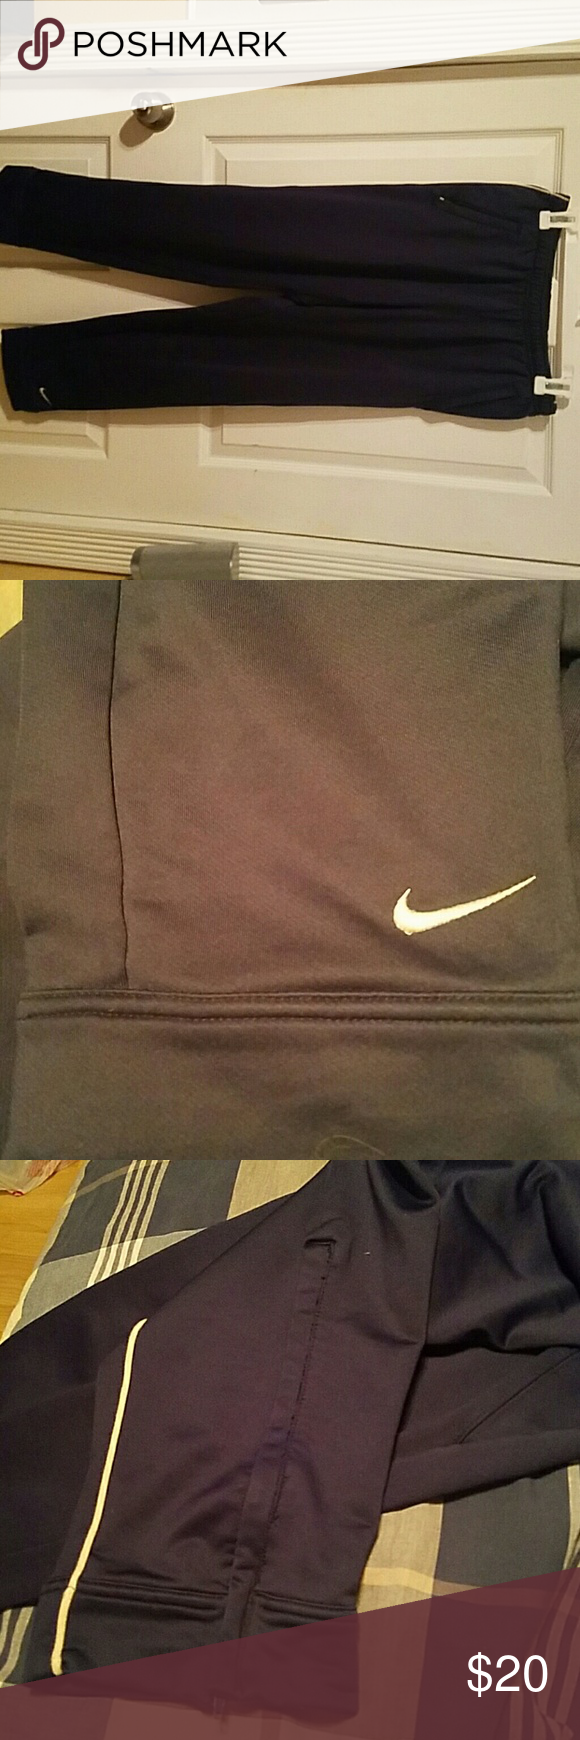 Nike Fit Dry pants Navy blue Nike Fit Dry pants. They have two pockets on the sides and they zip up as well. The bottoms zip up as well. Nike Pants Track Pants & Joggers